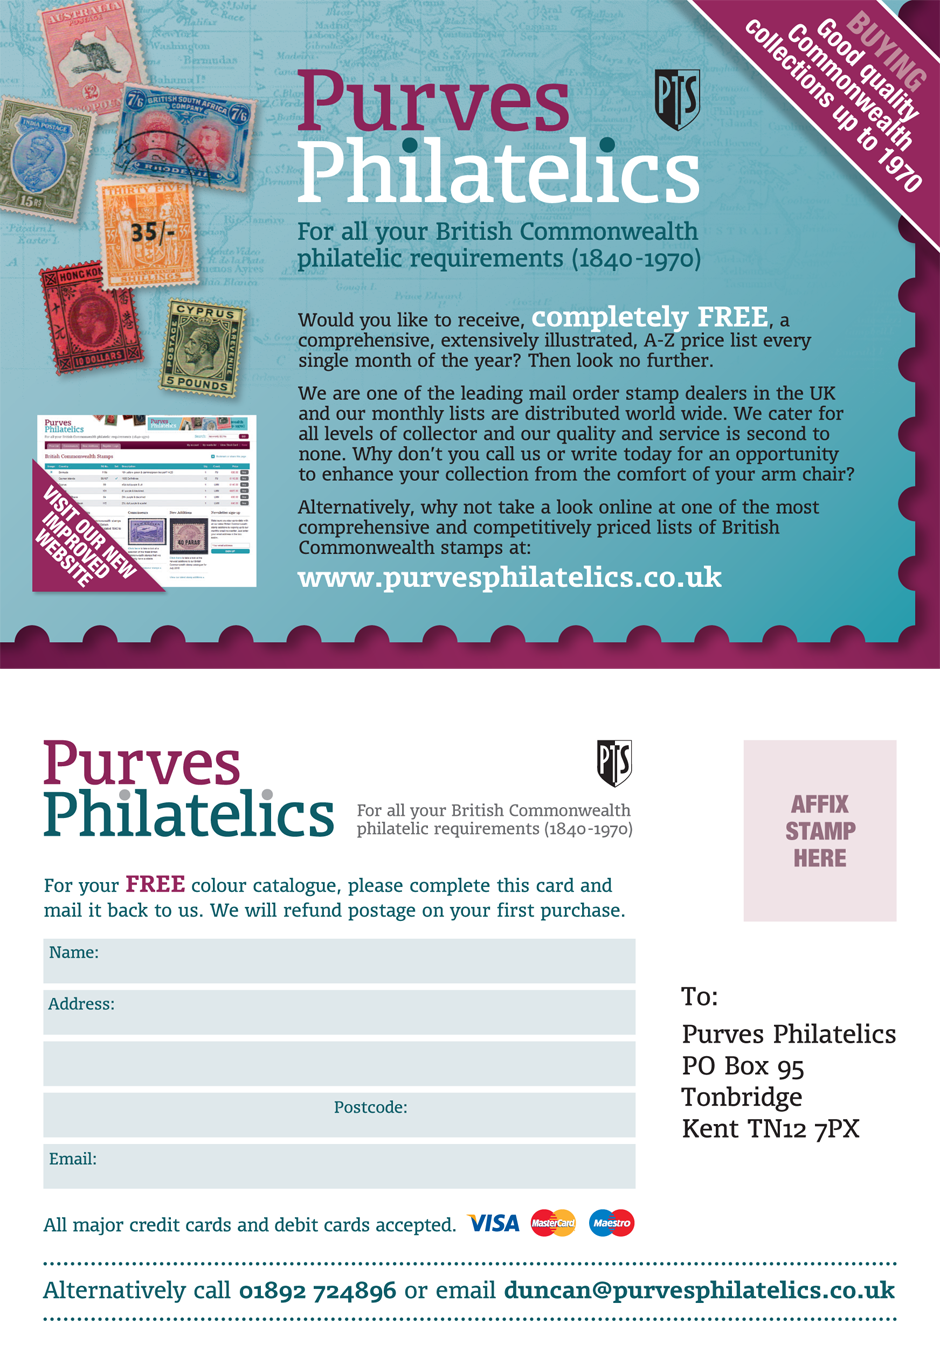 Purves Philatelics promotional postcard